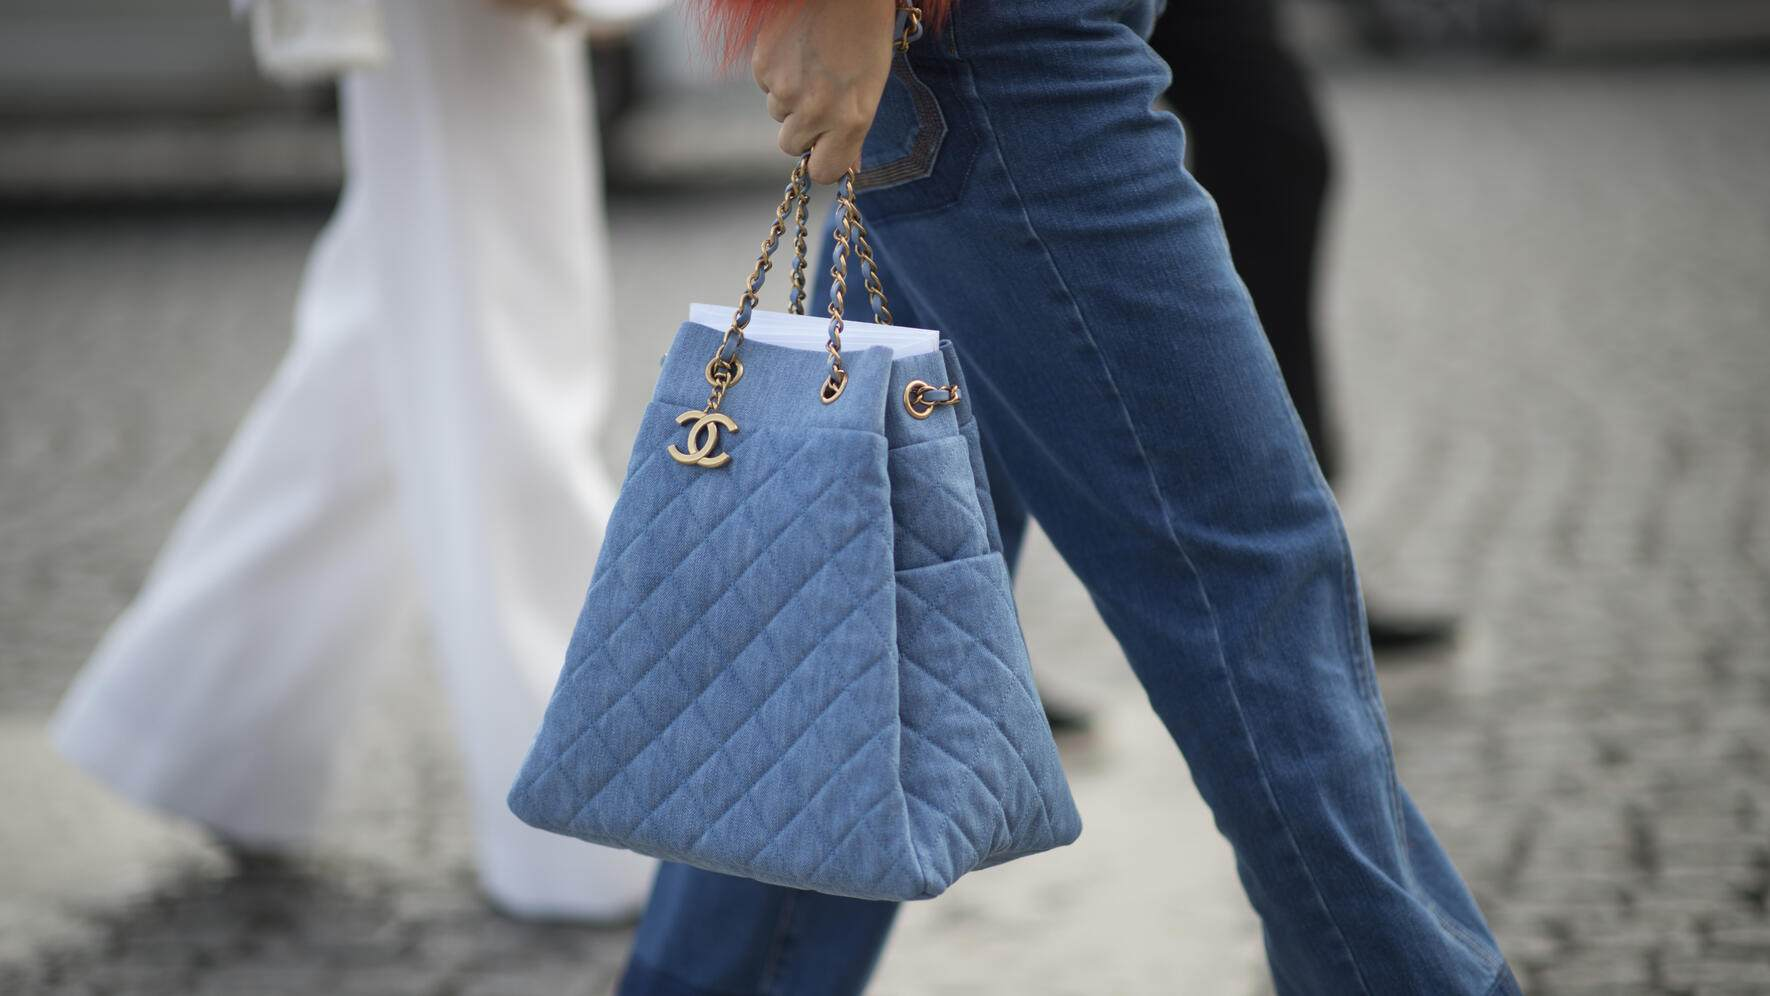 PARIS, FRANCE - MARCH 08:  A guest is wearing a Chanel bag seen in the streets of Paris during Paris Fashion Week Womenswear Fall/Winter 2016/2017 on March 8, 2016 in Paris, France.  (Photo by Timur Emek/Getty Images)